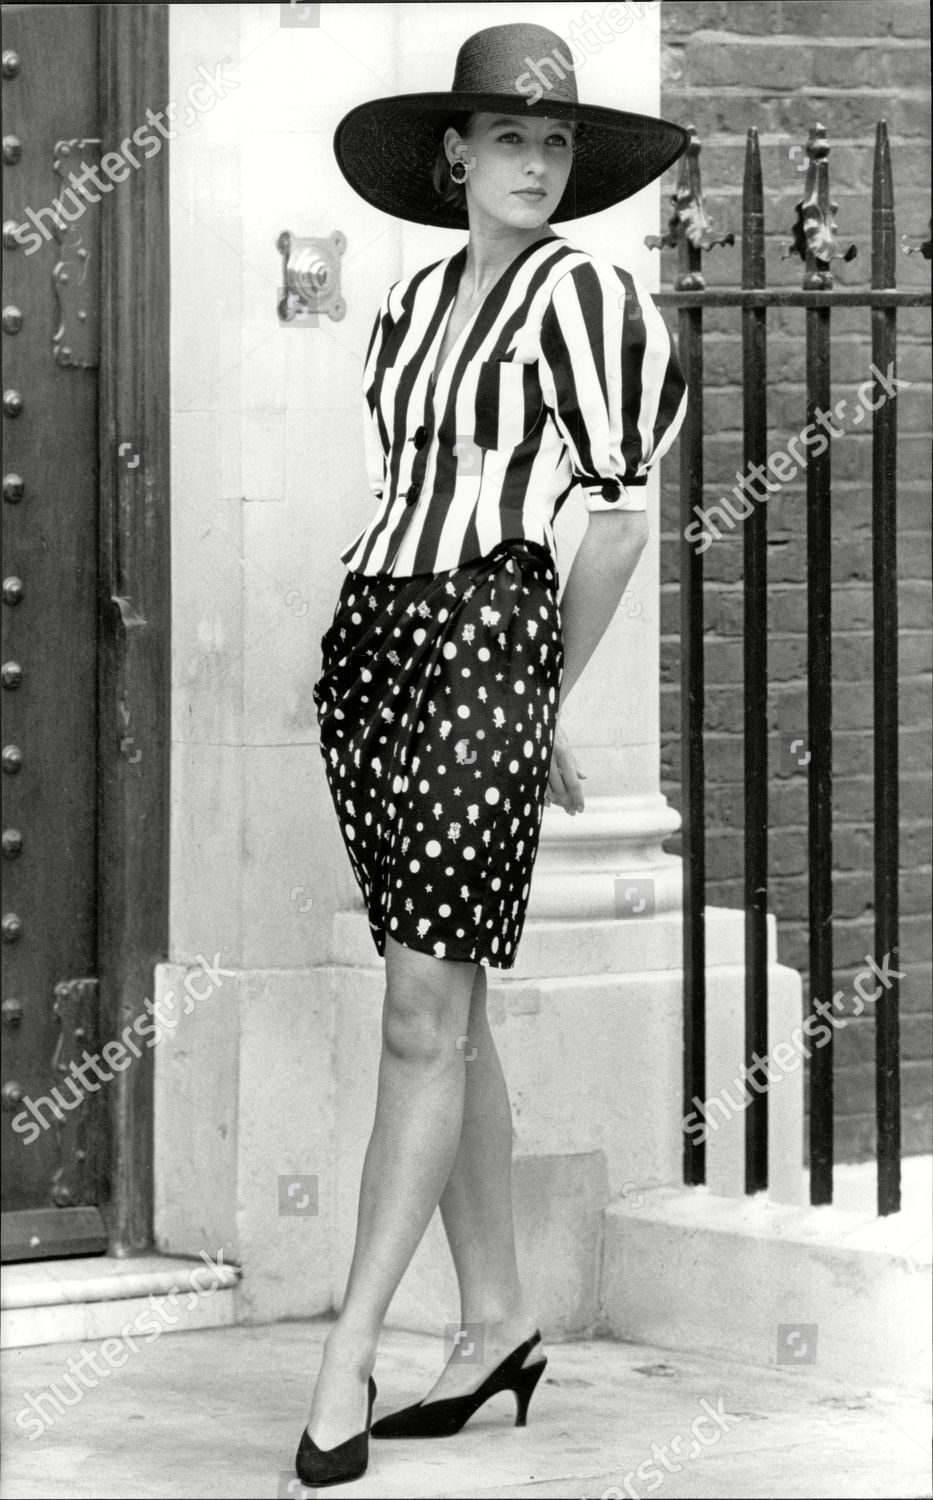 7d3f24bac4 Black And White Print Sarong Skirt. Black And White Striped Jacket A320 By  Arabella Pollen